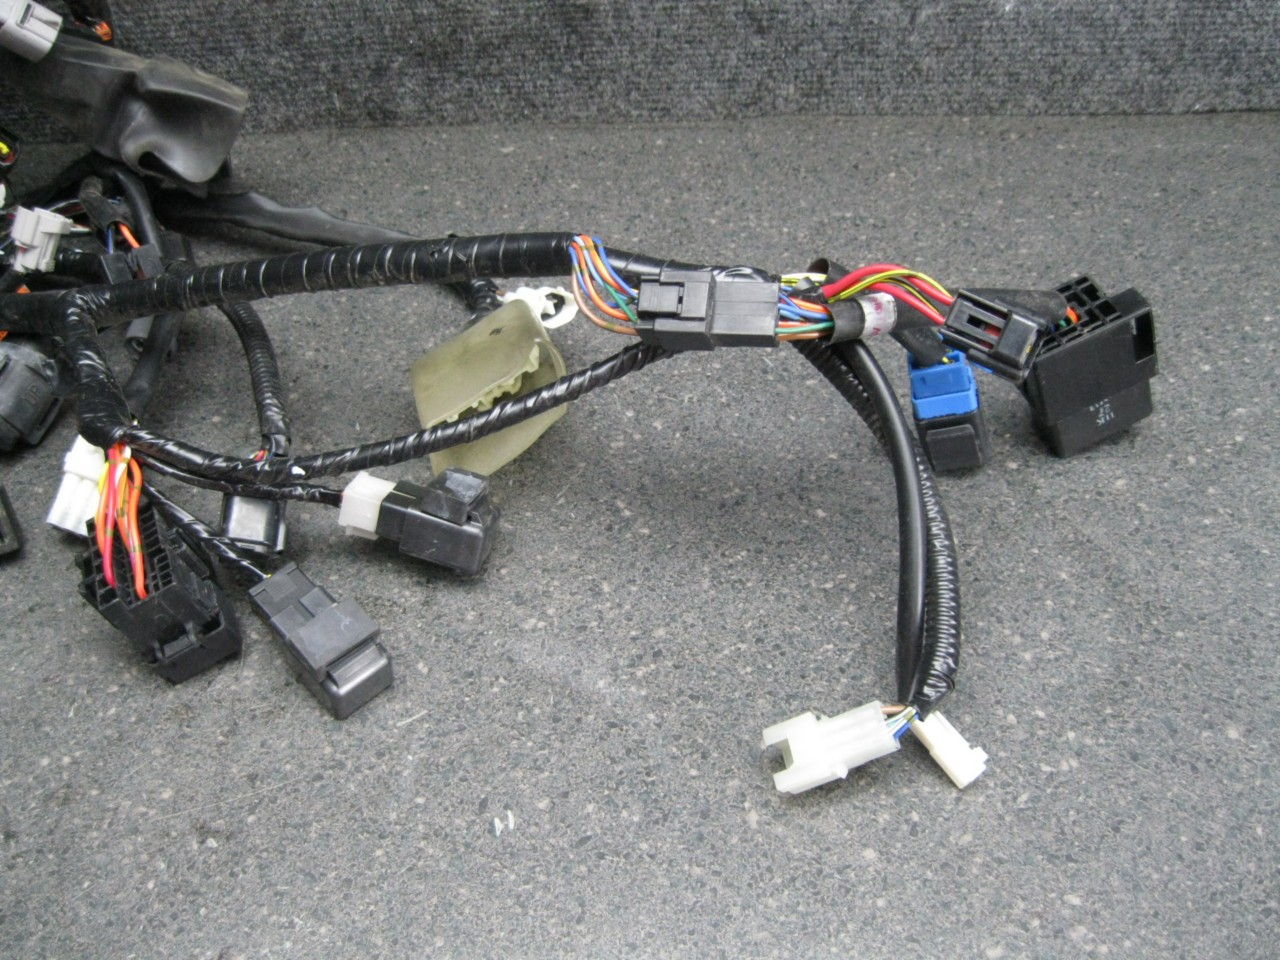 hight resolution of 09 suzuki gsxr750 gsxr gsx r 750 wiring wire harness loom suzuki gsxr 750 wiring diagram gsxr 750 wiring diagram